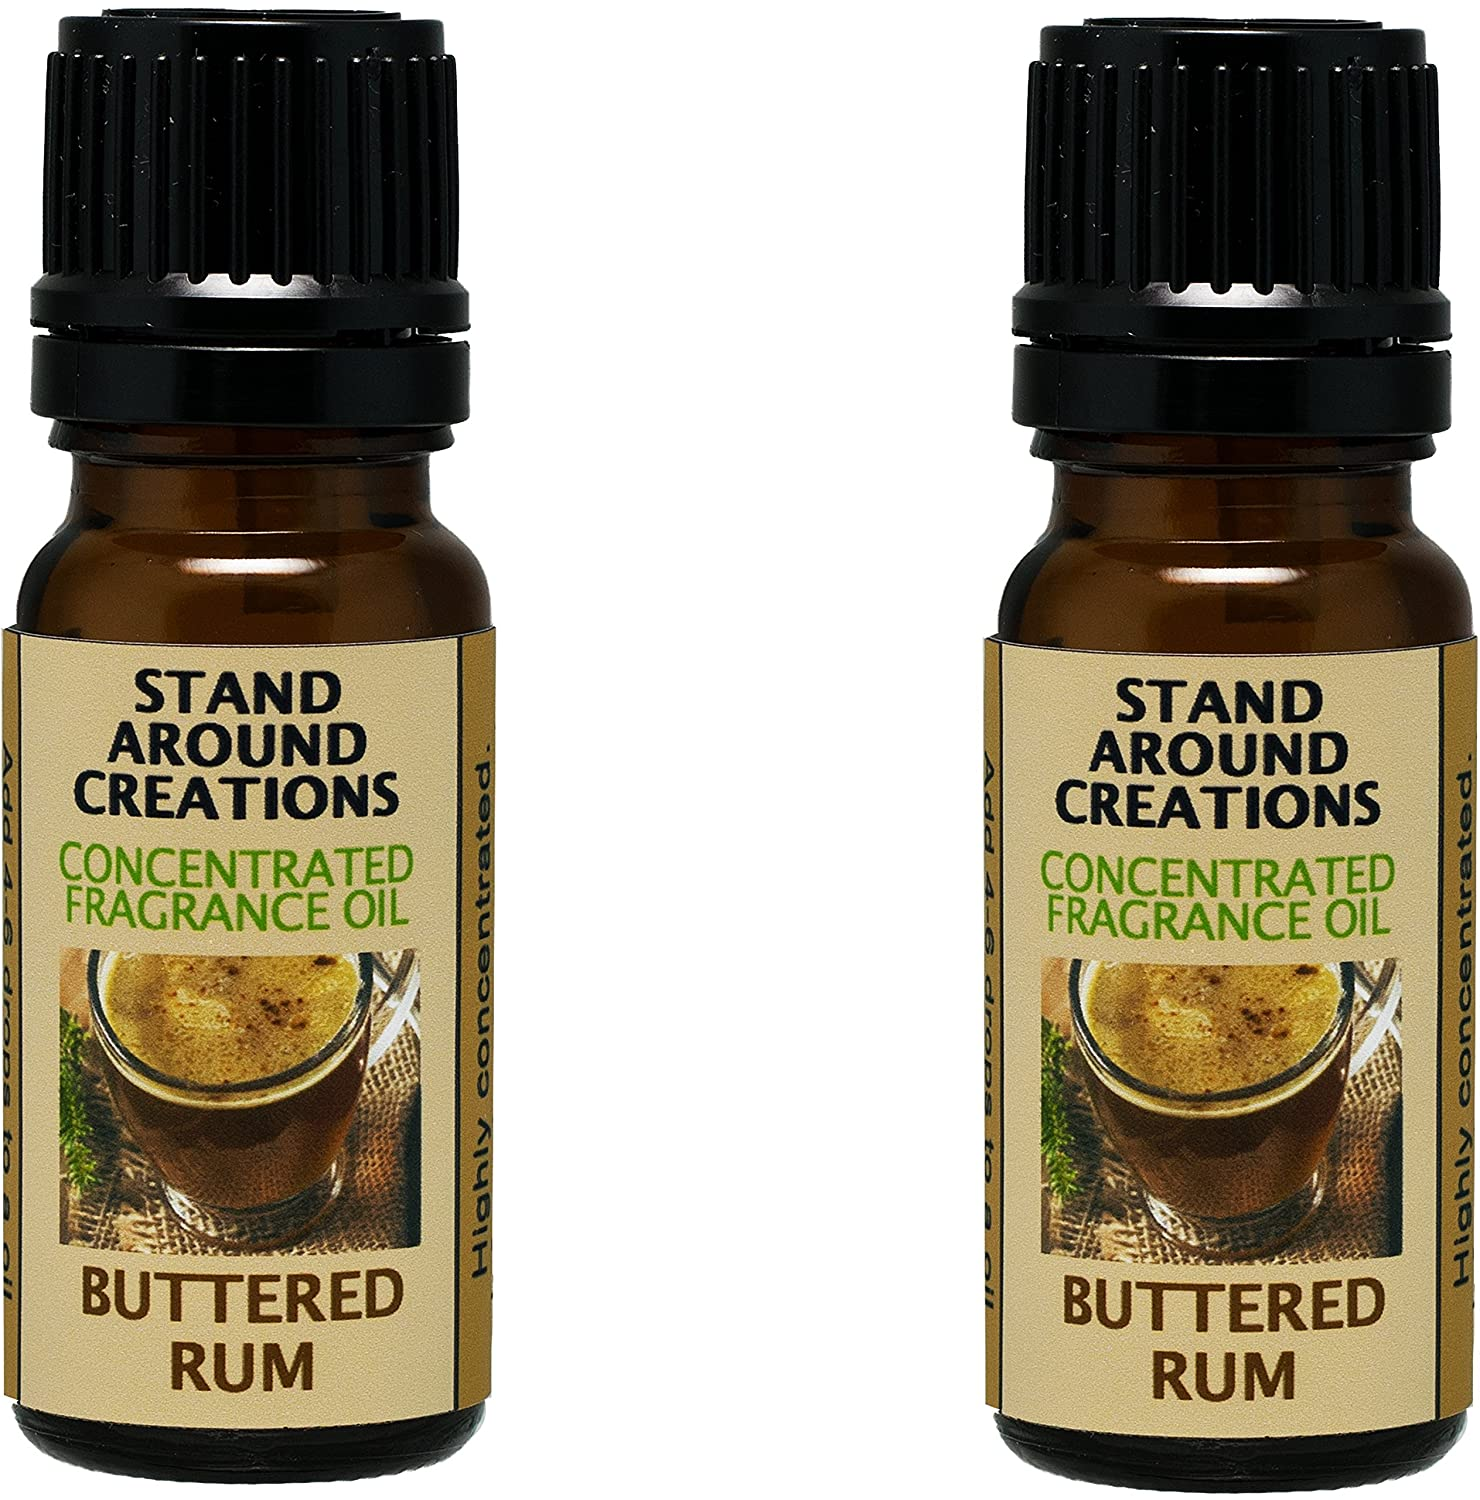 Set of 2 - Concentrated Fragrance Oil - Buttered Rum: Our buttered rum smells like the real thing - dark rum, butter, sugar w/cloves. Infused w/essential oils(.33 fl.oz.) Stand Around Creations